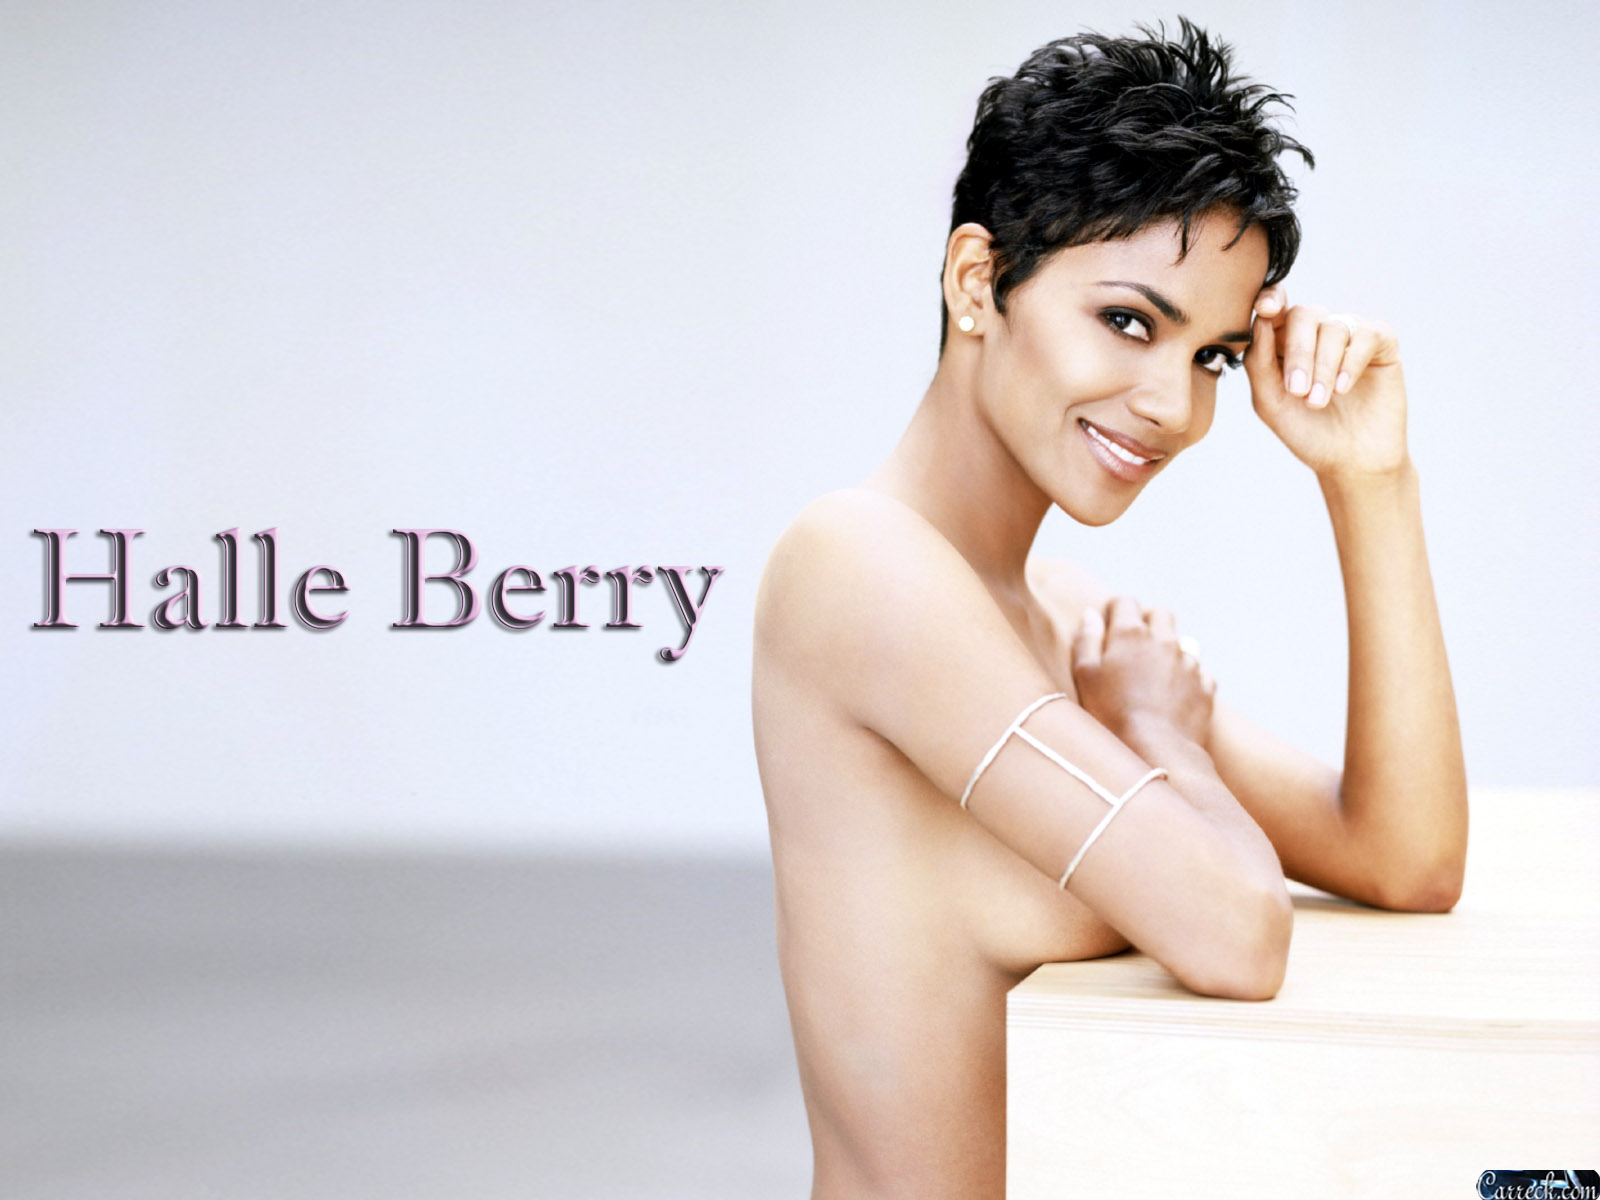 Halle Berry: Halle Berry Hot Wallpapers холли берри